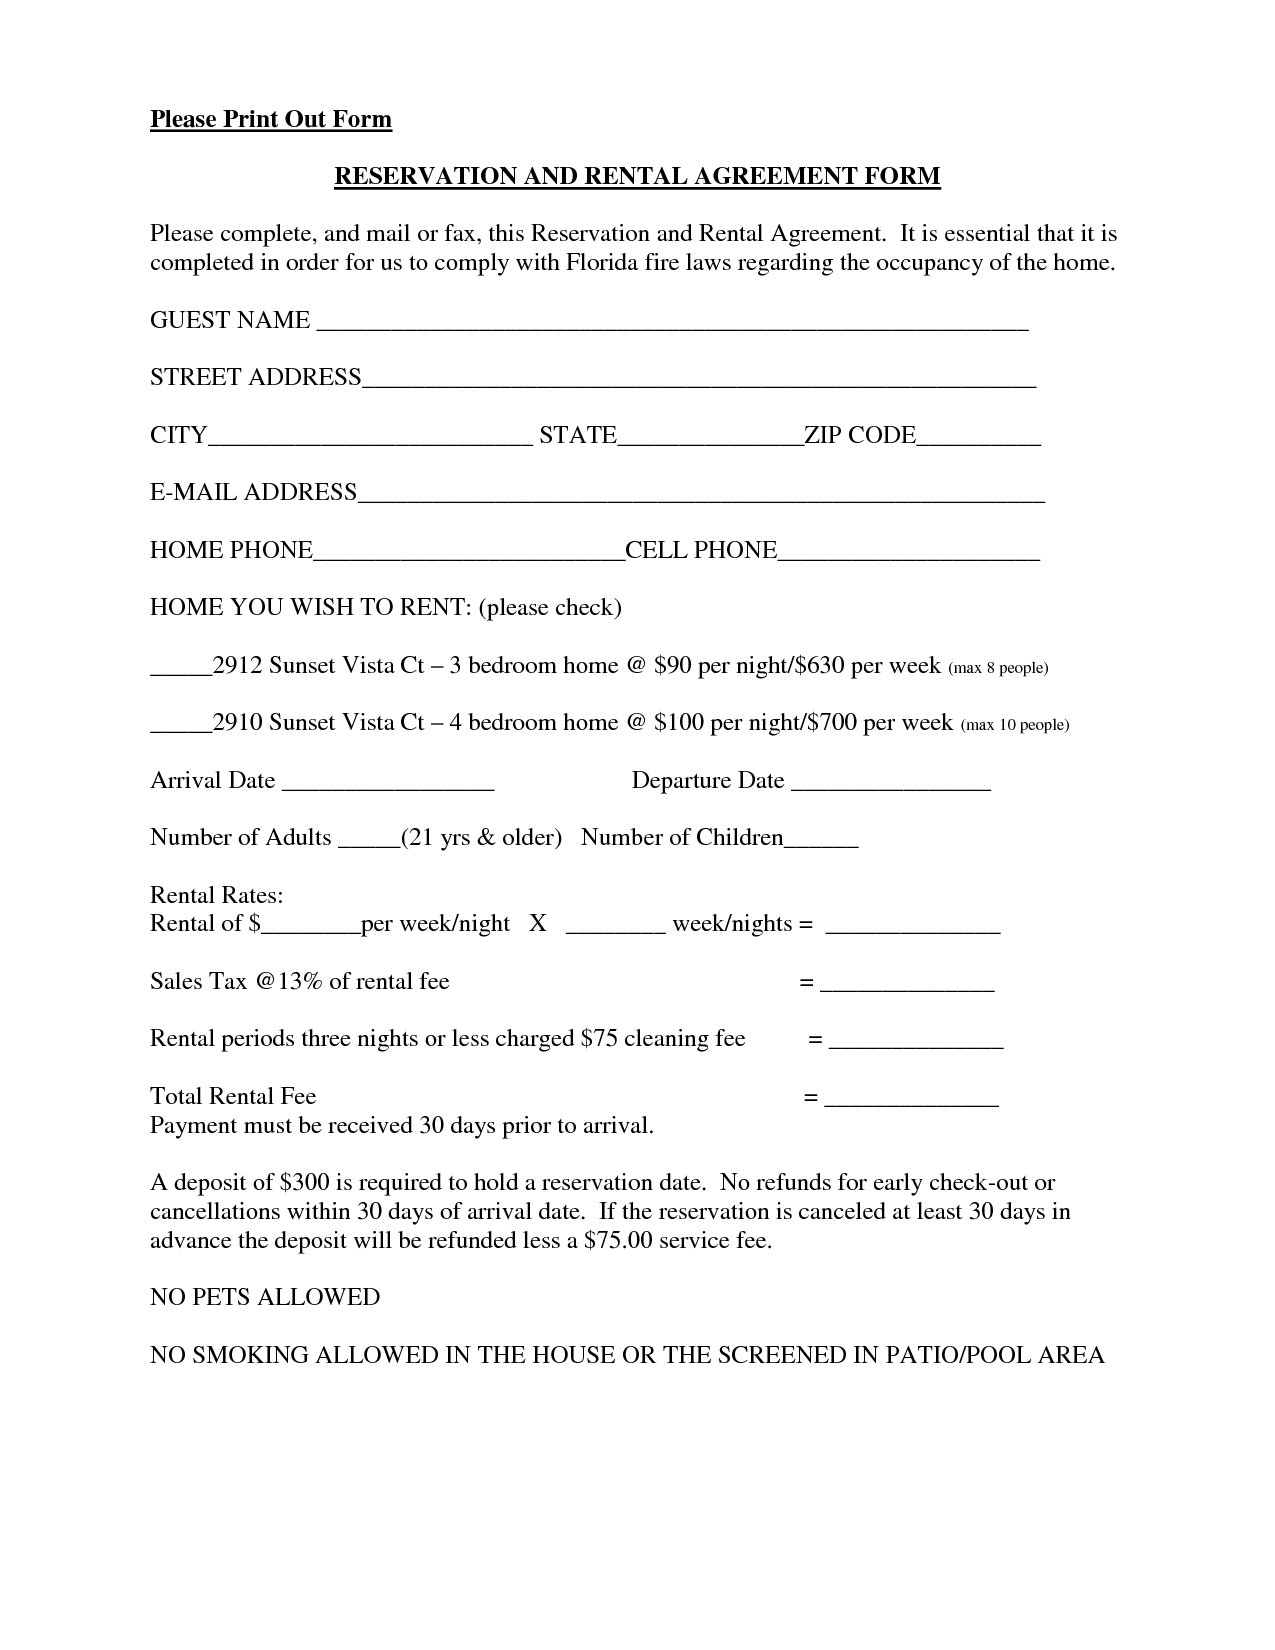 Lease Agreement For Renting A Room Template